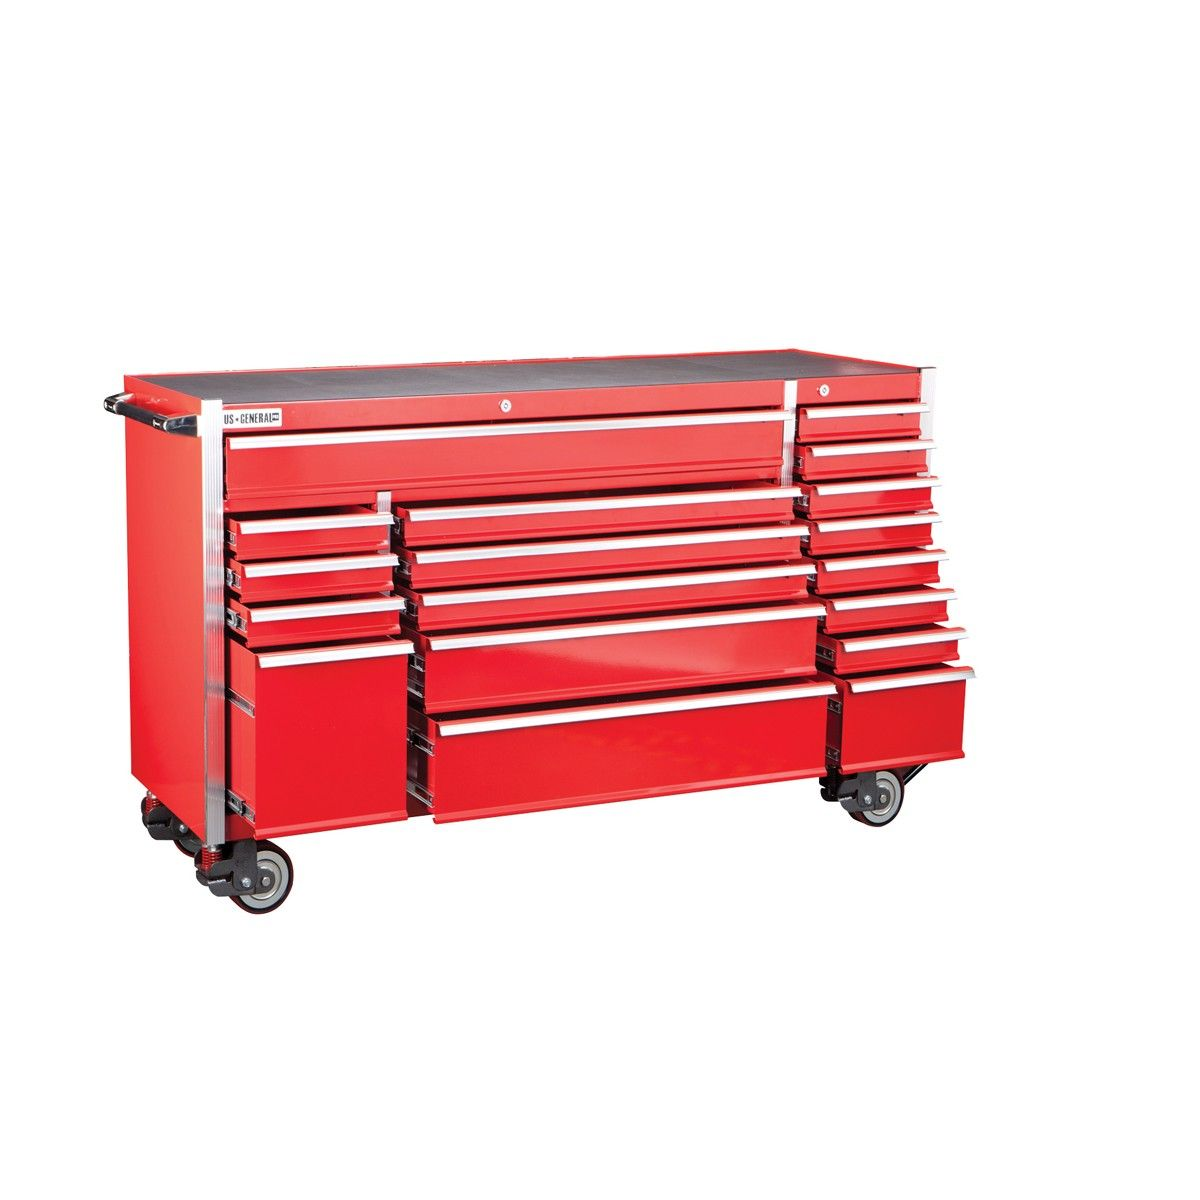 Elegant 18 In Glossy Red End Cabinet for Roller tool Chest